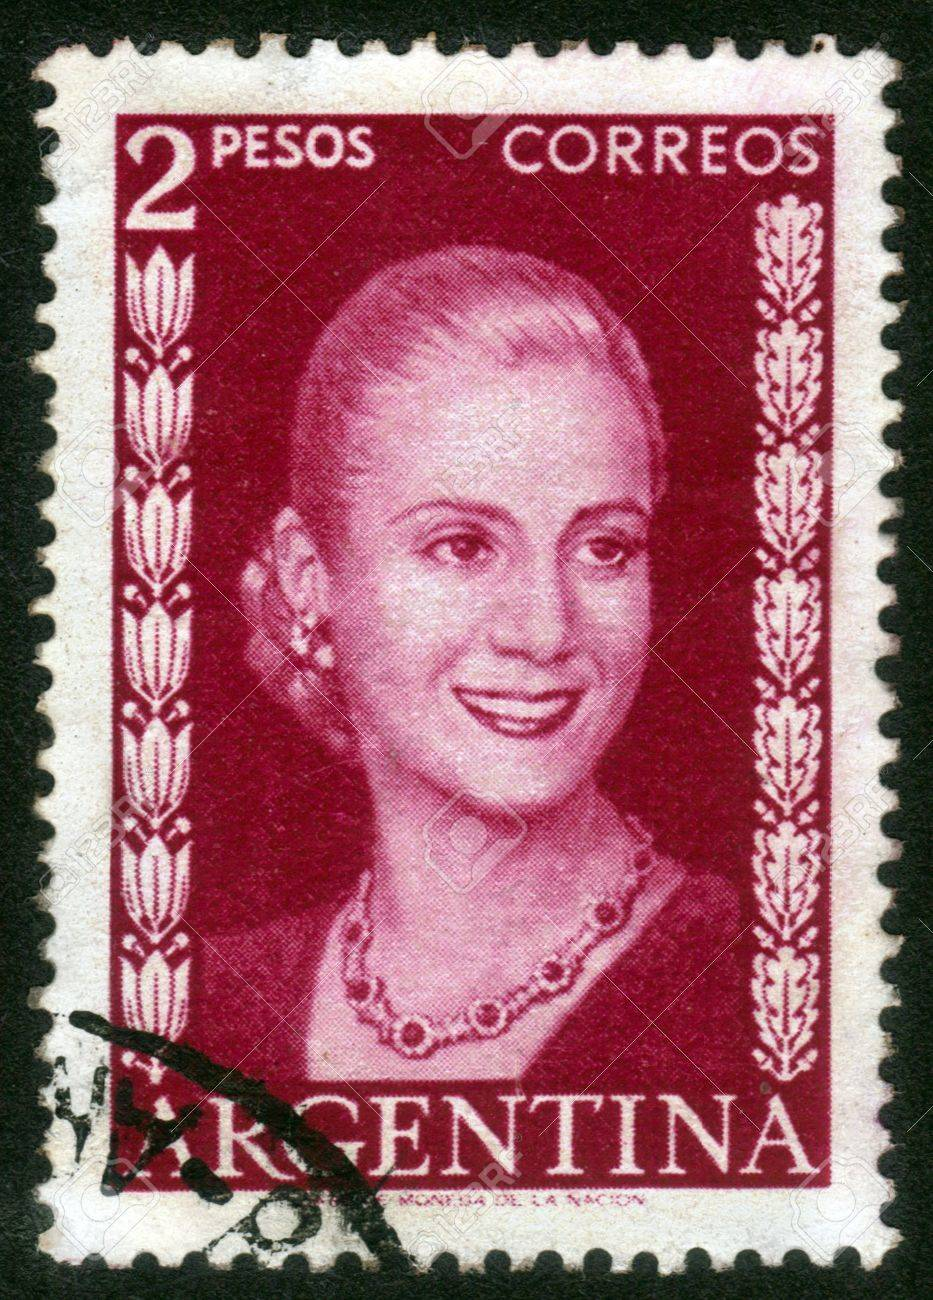 ARGENTINA - CIRCA 1948  A stamp printed in Argentina shows image of a political leader of Argentina, Maria Eva Duarte de Peron, circa 1948 Stock Photo - 14147897